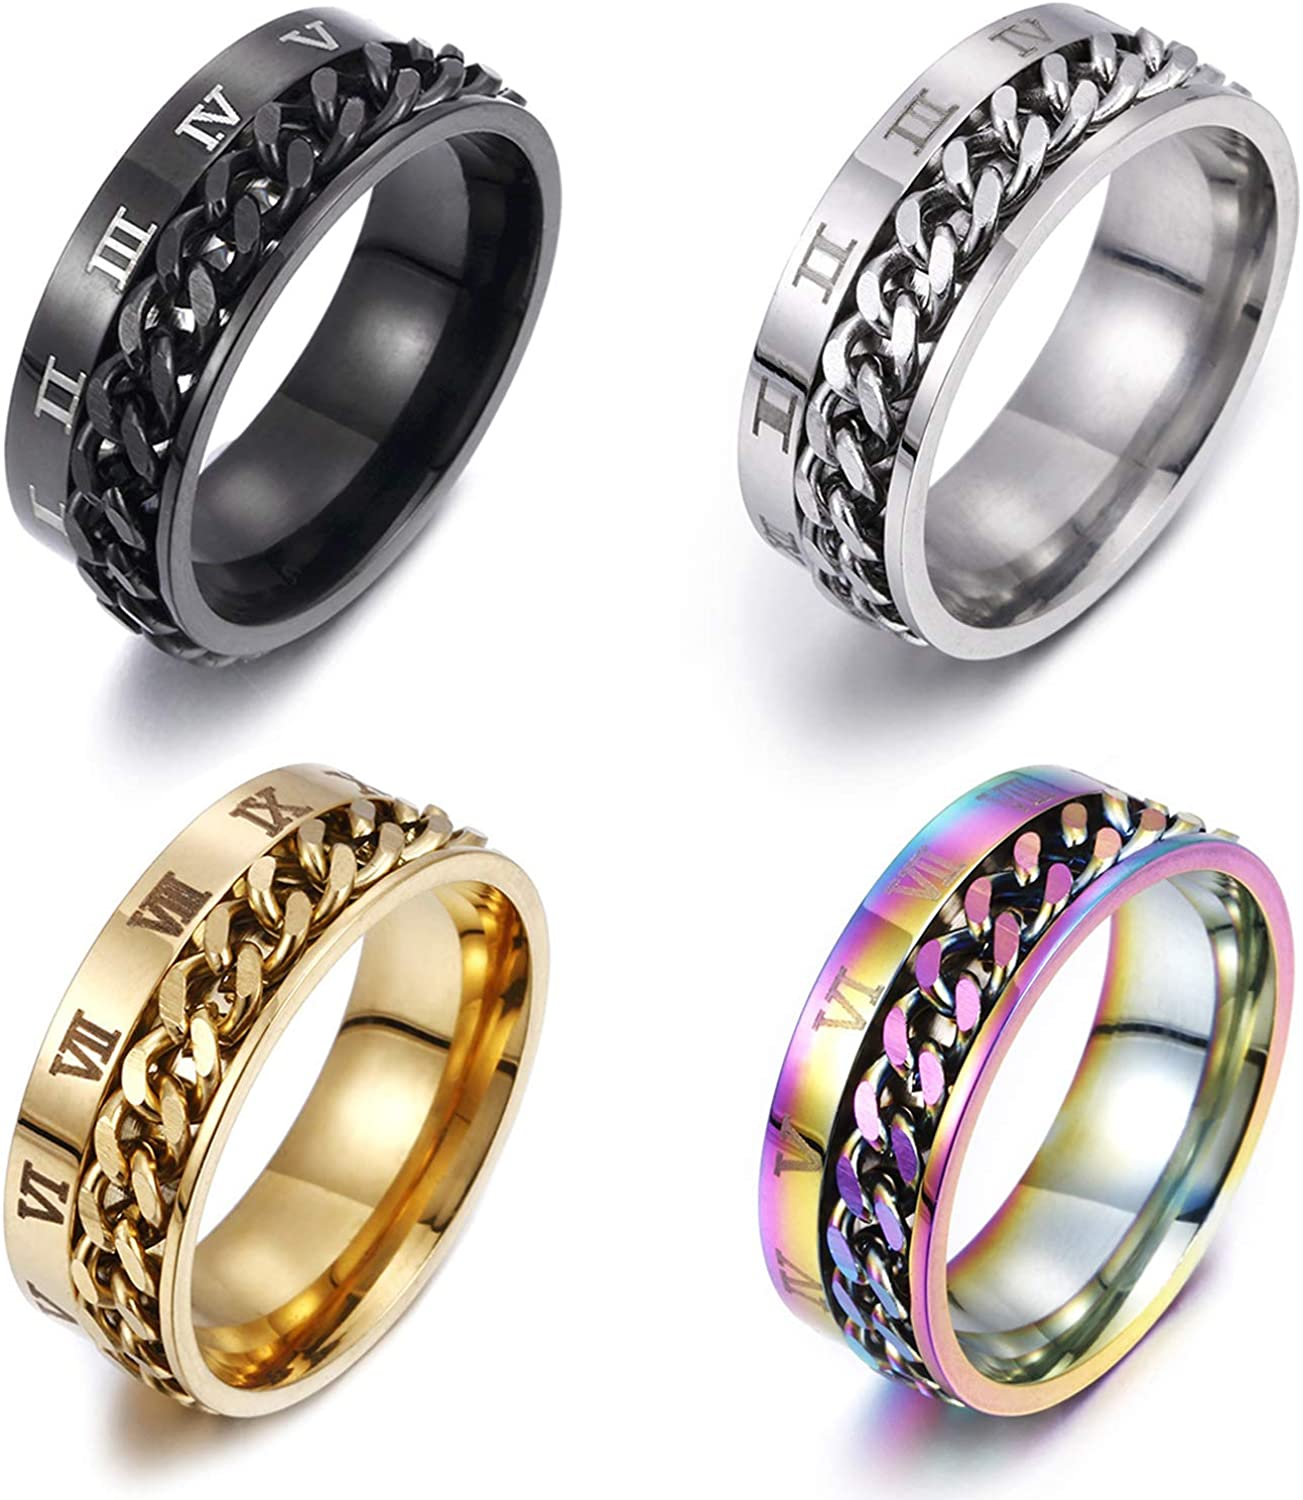 Gleamart 4Pcs Stainless Steel Rotatable Chain Ring Roman Numerals Spinner Ring Set for Men